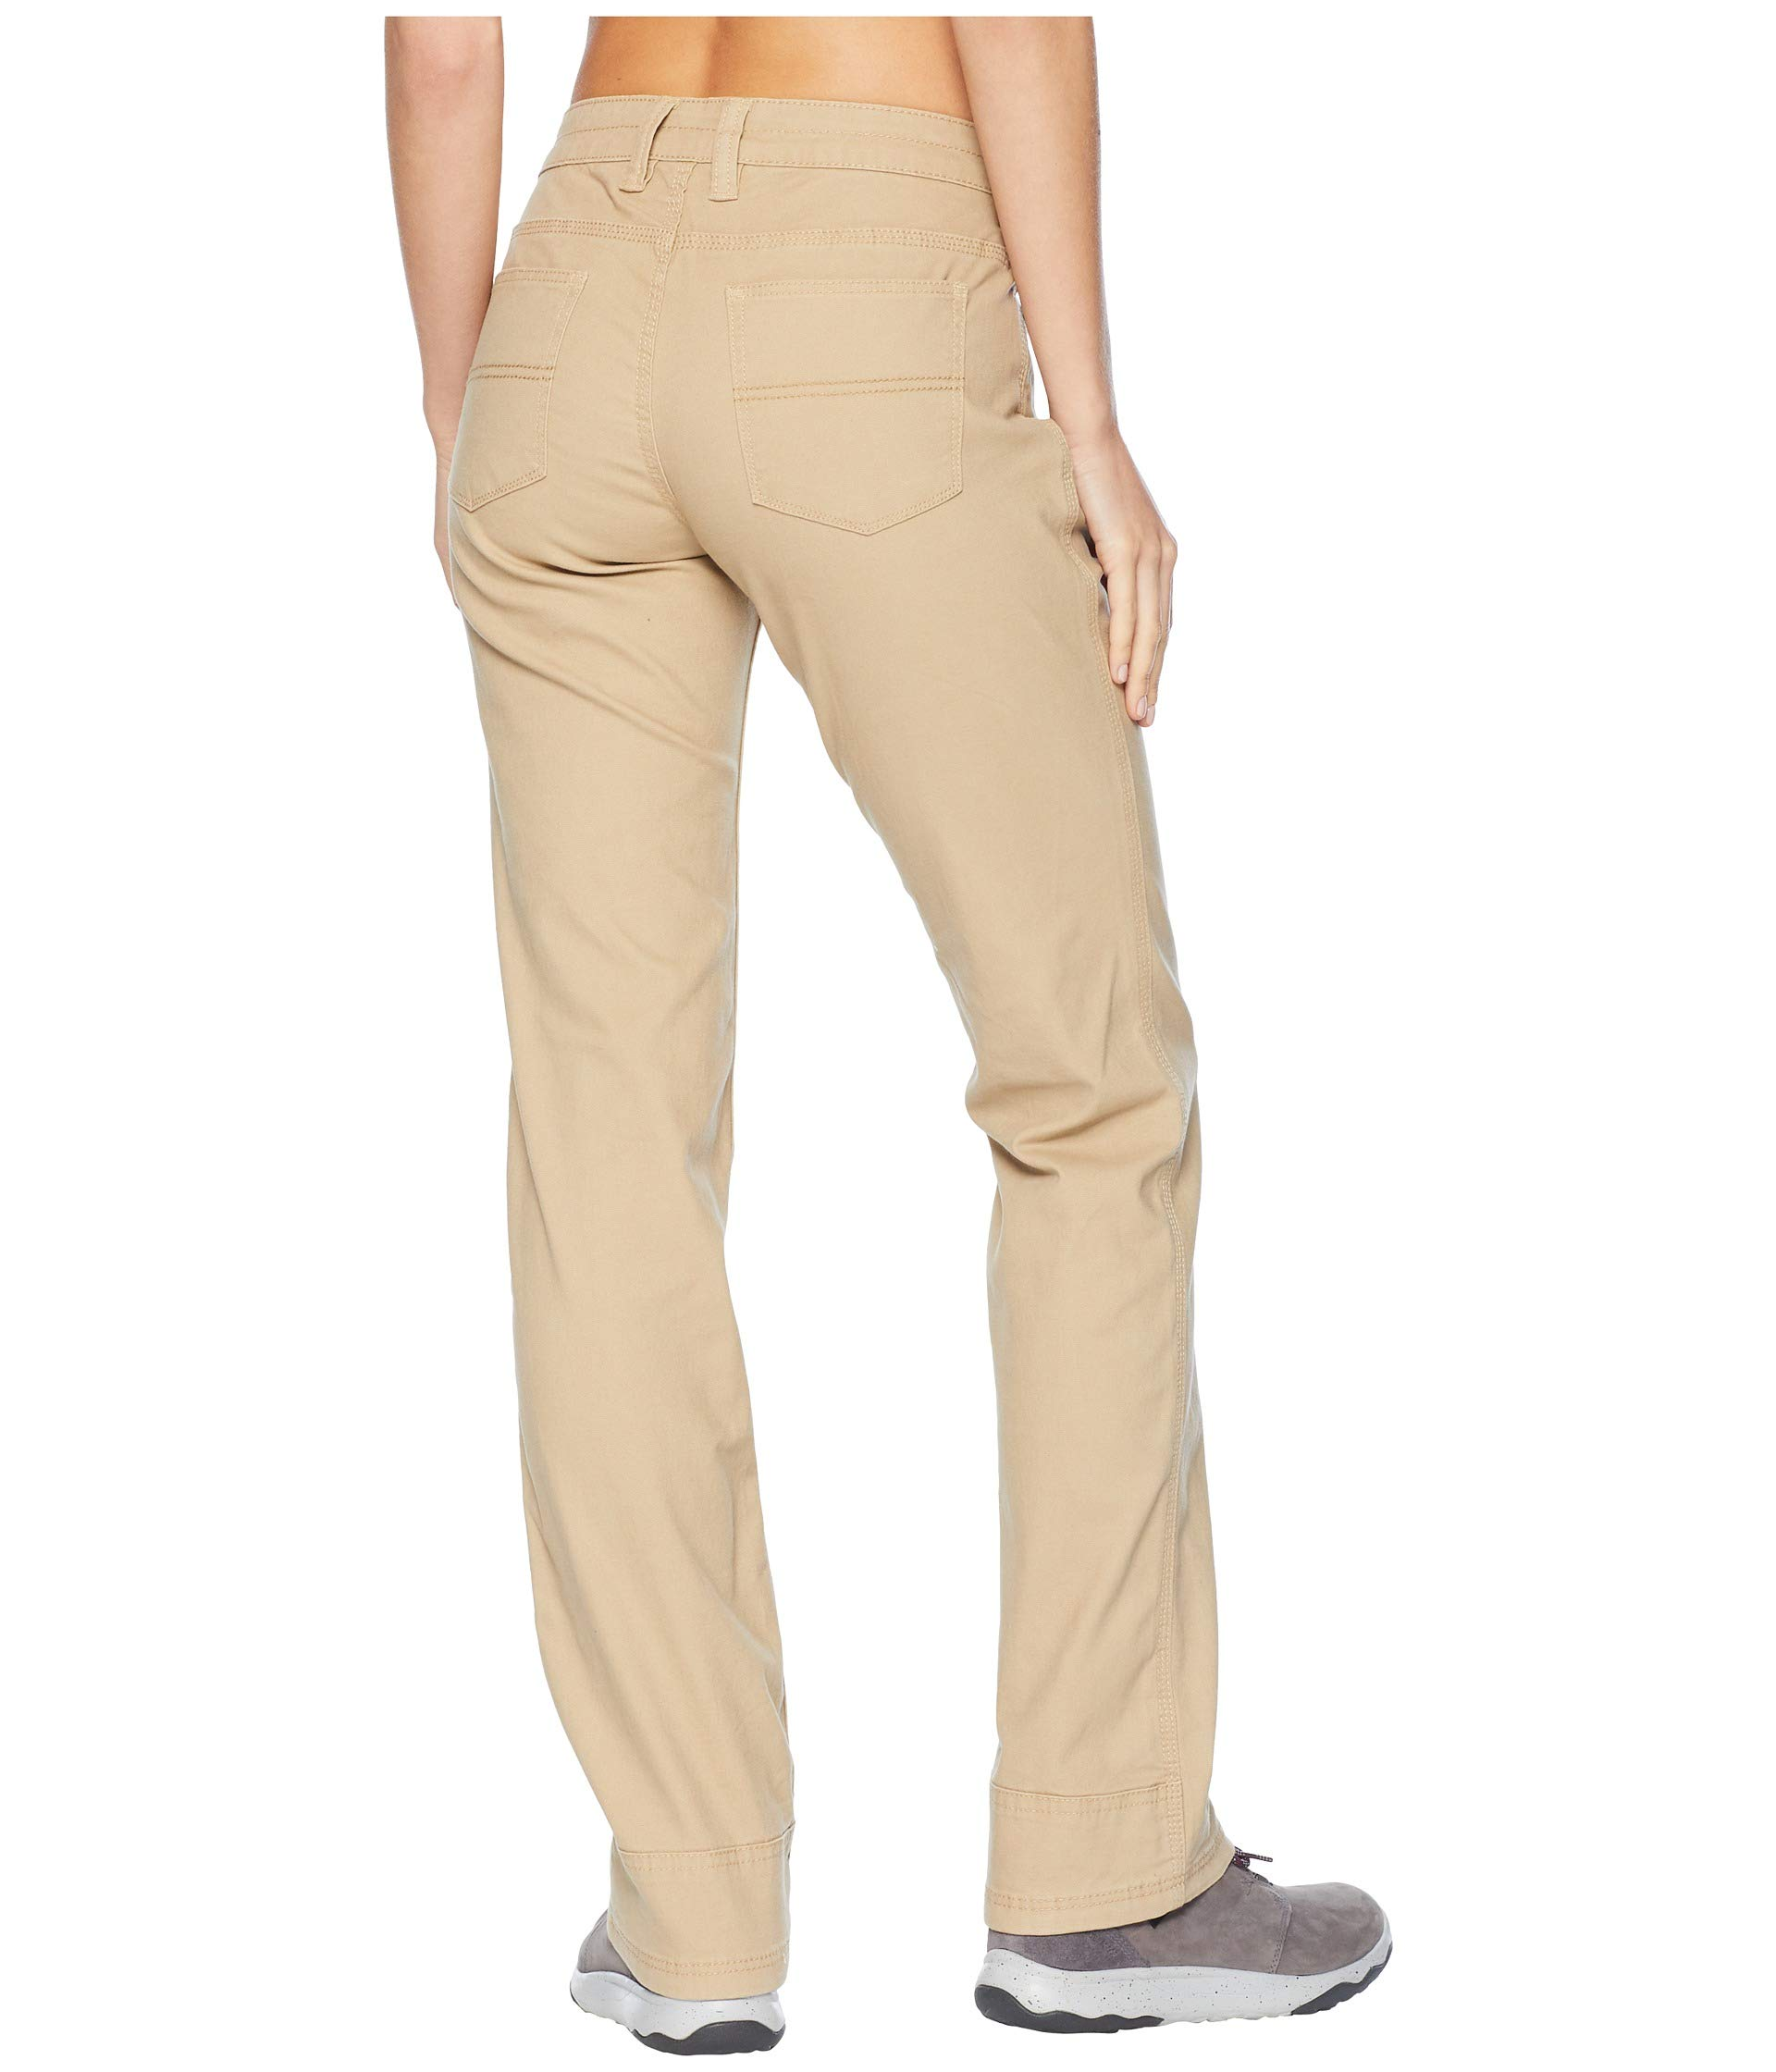 Camber Yellowstone Fit Pants Khakis Classic 106 Mountain 6xqF875Ow